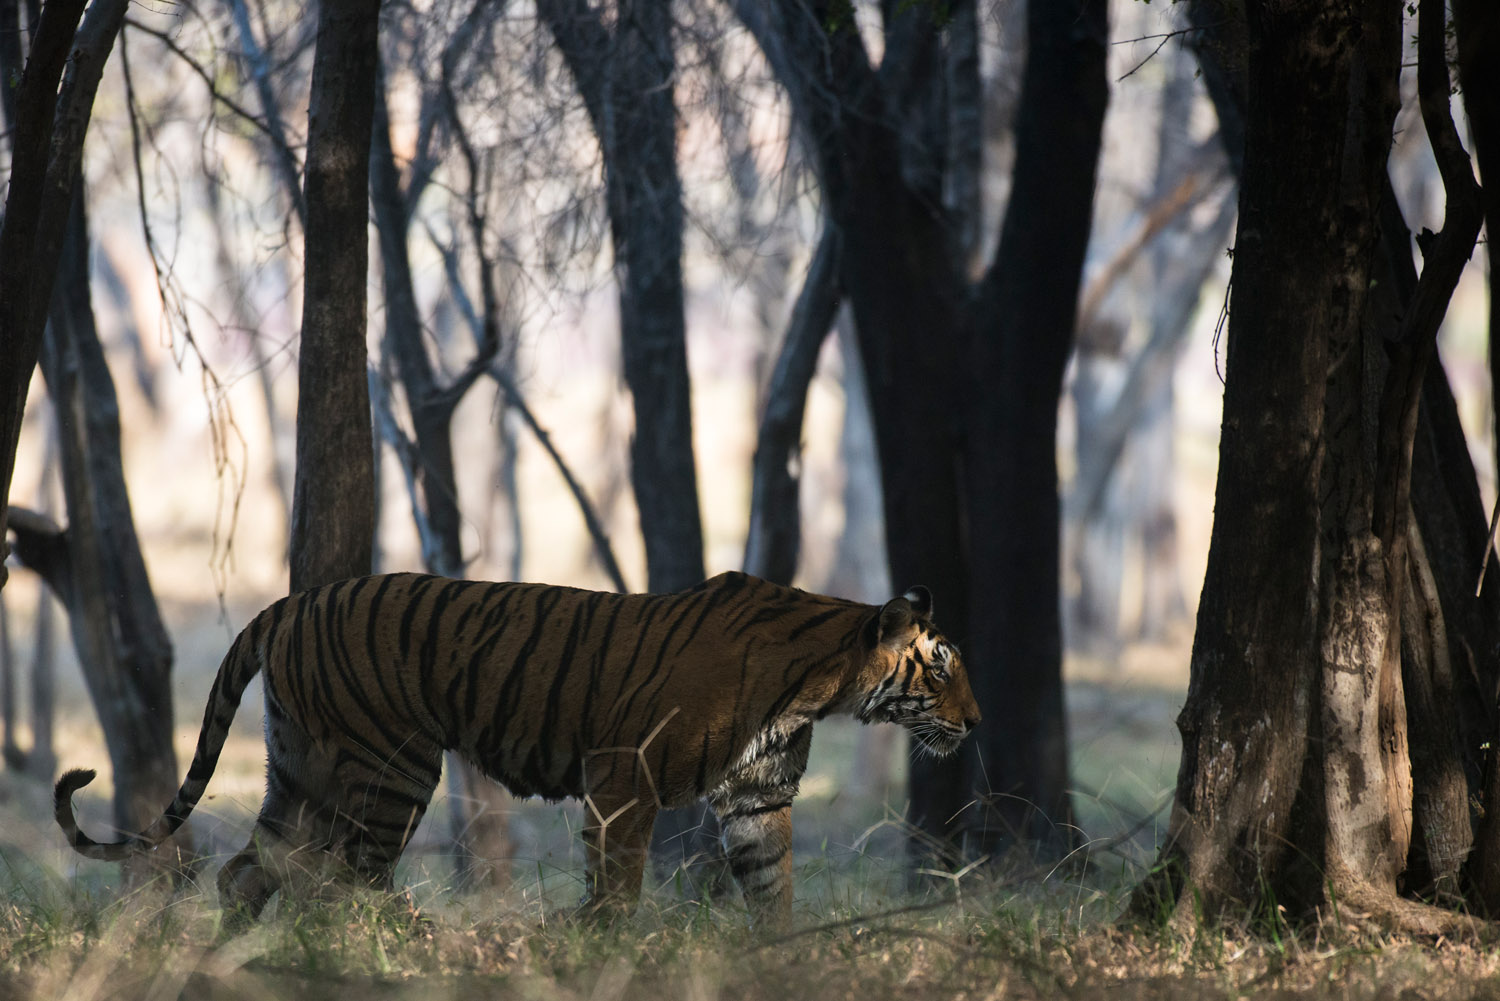 Bengal tigress in dhok forest, Ranthambhore National Park, Rajasthan, India